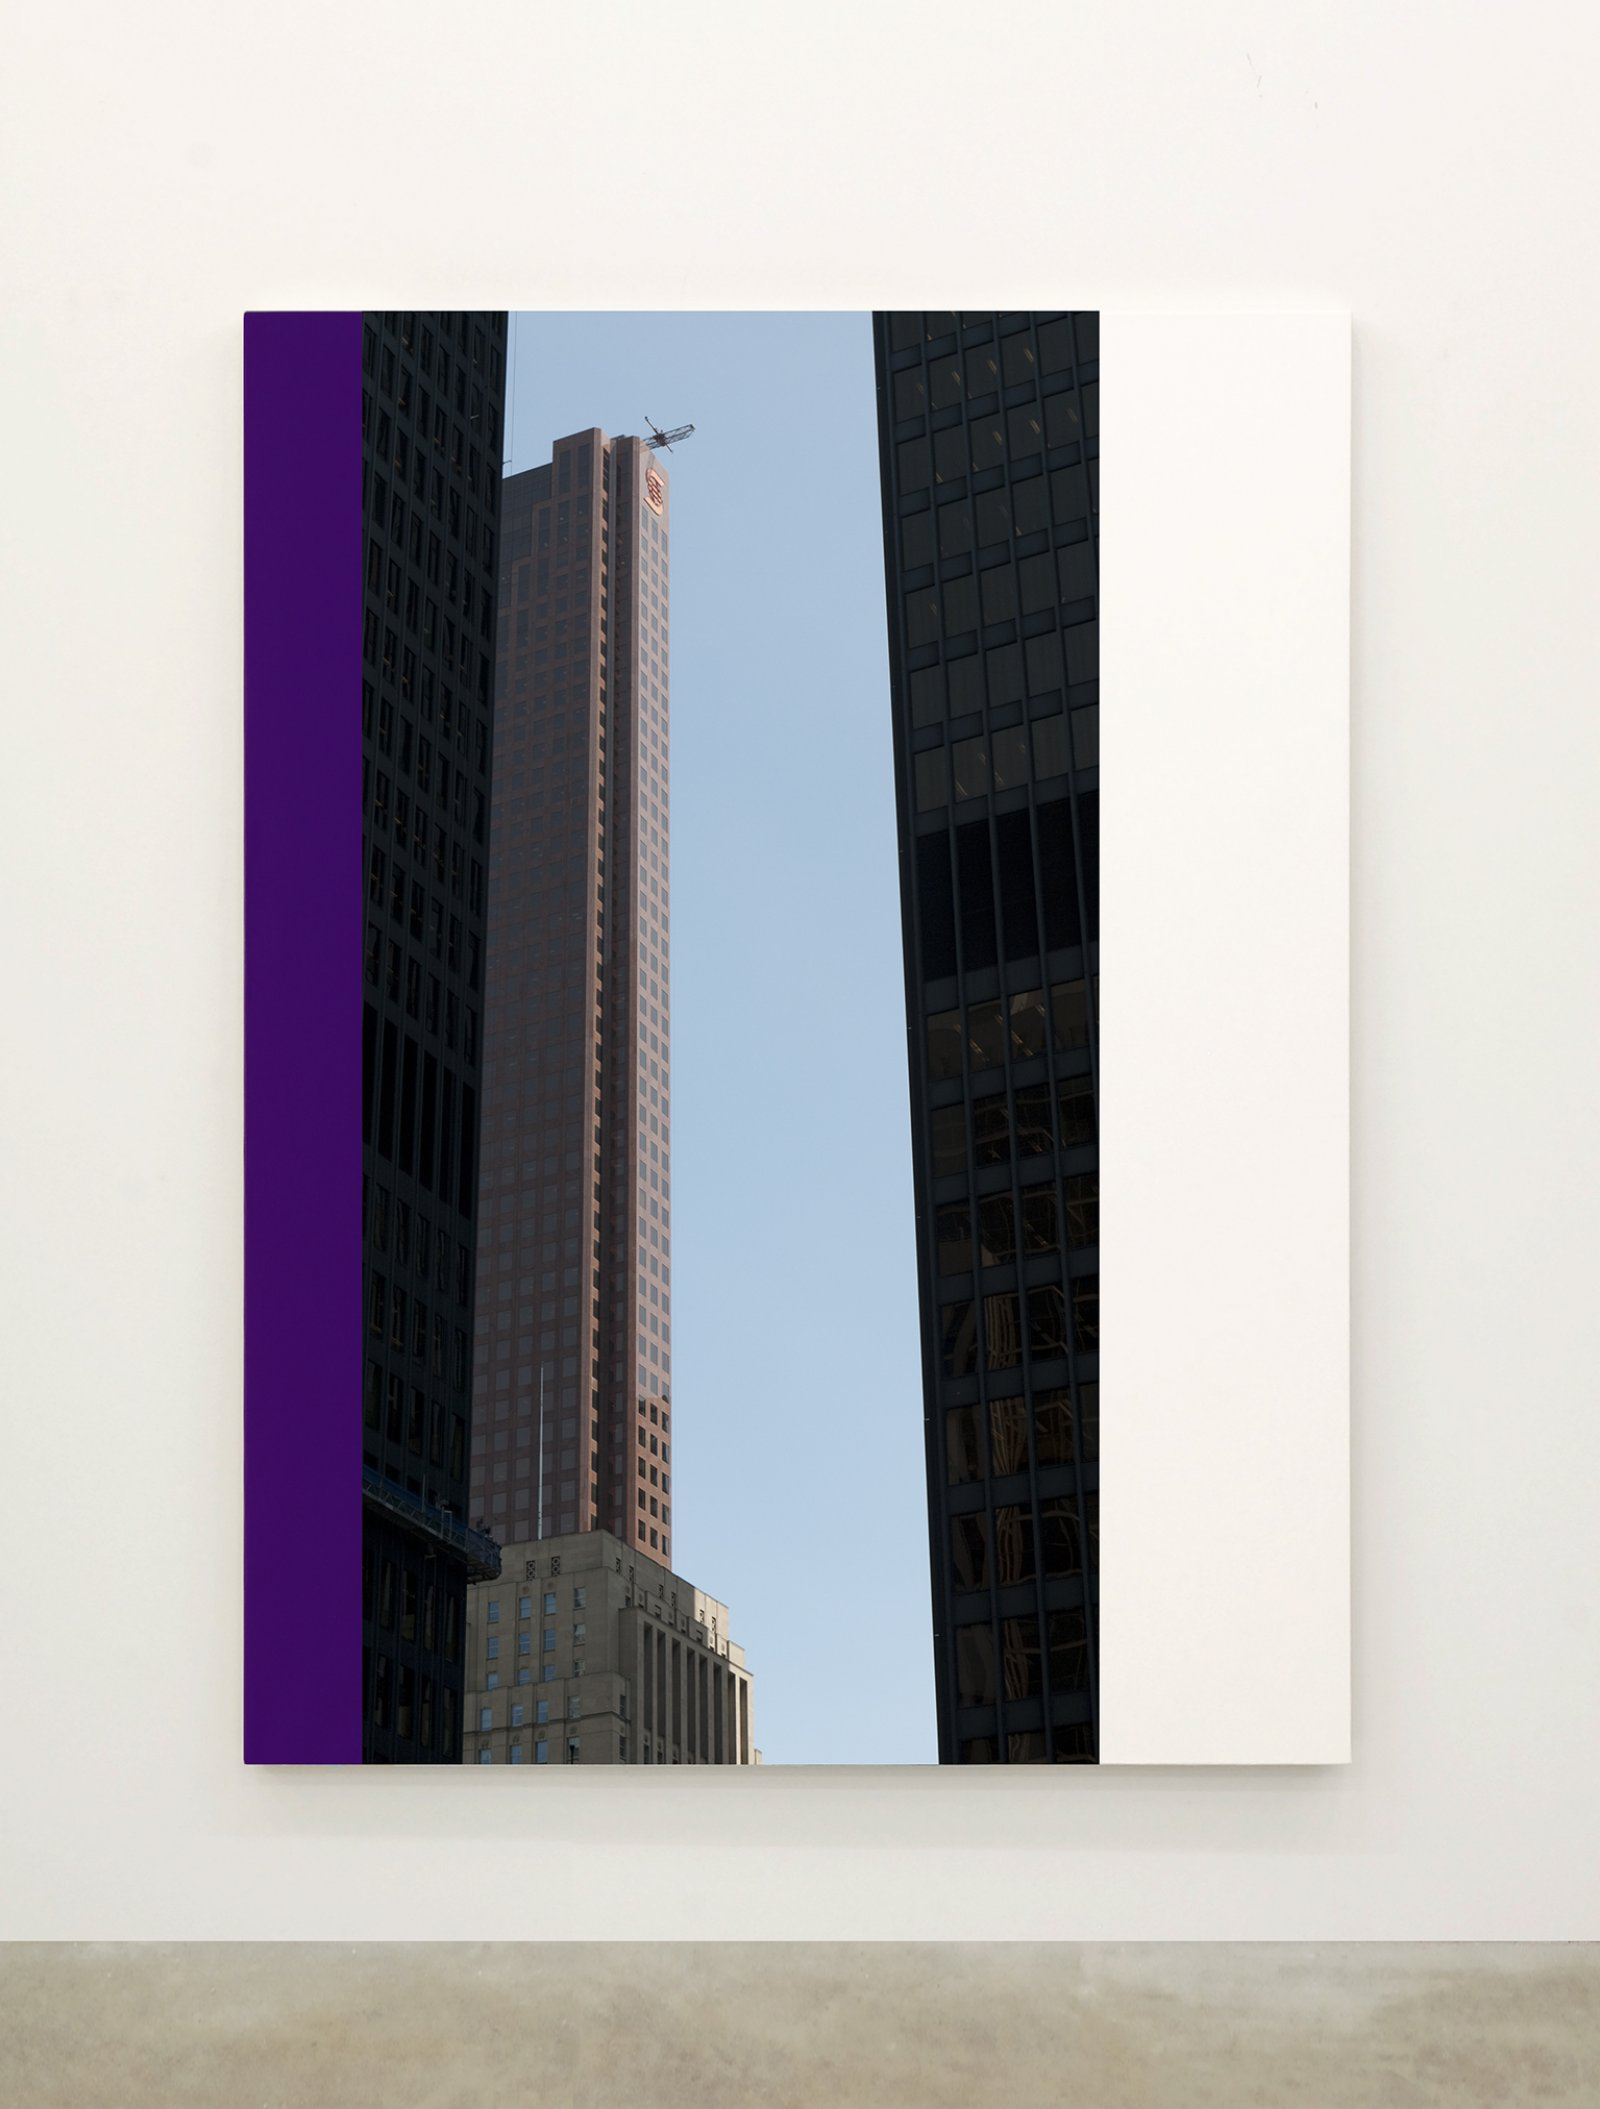 Ian Wallace,Abstract Painting X(The Financial District), 2010,12 photolaminate with acrylic on canvas panels, each 96 x 72 in. (244 x 183 cm)